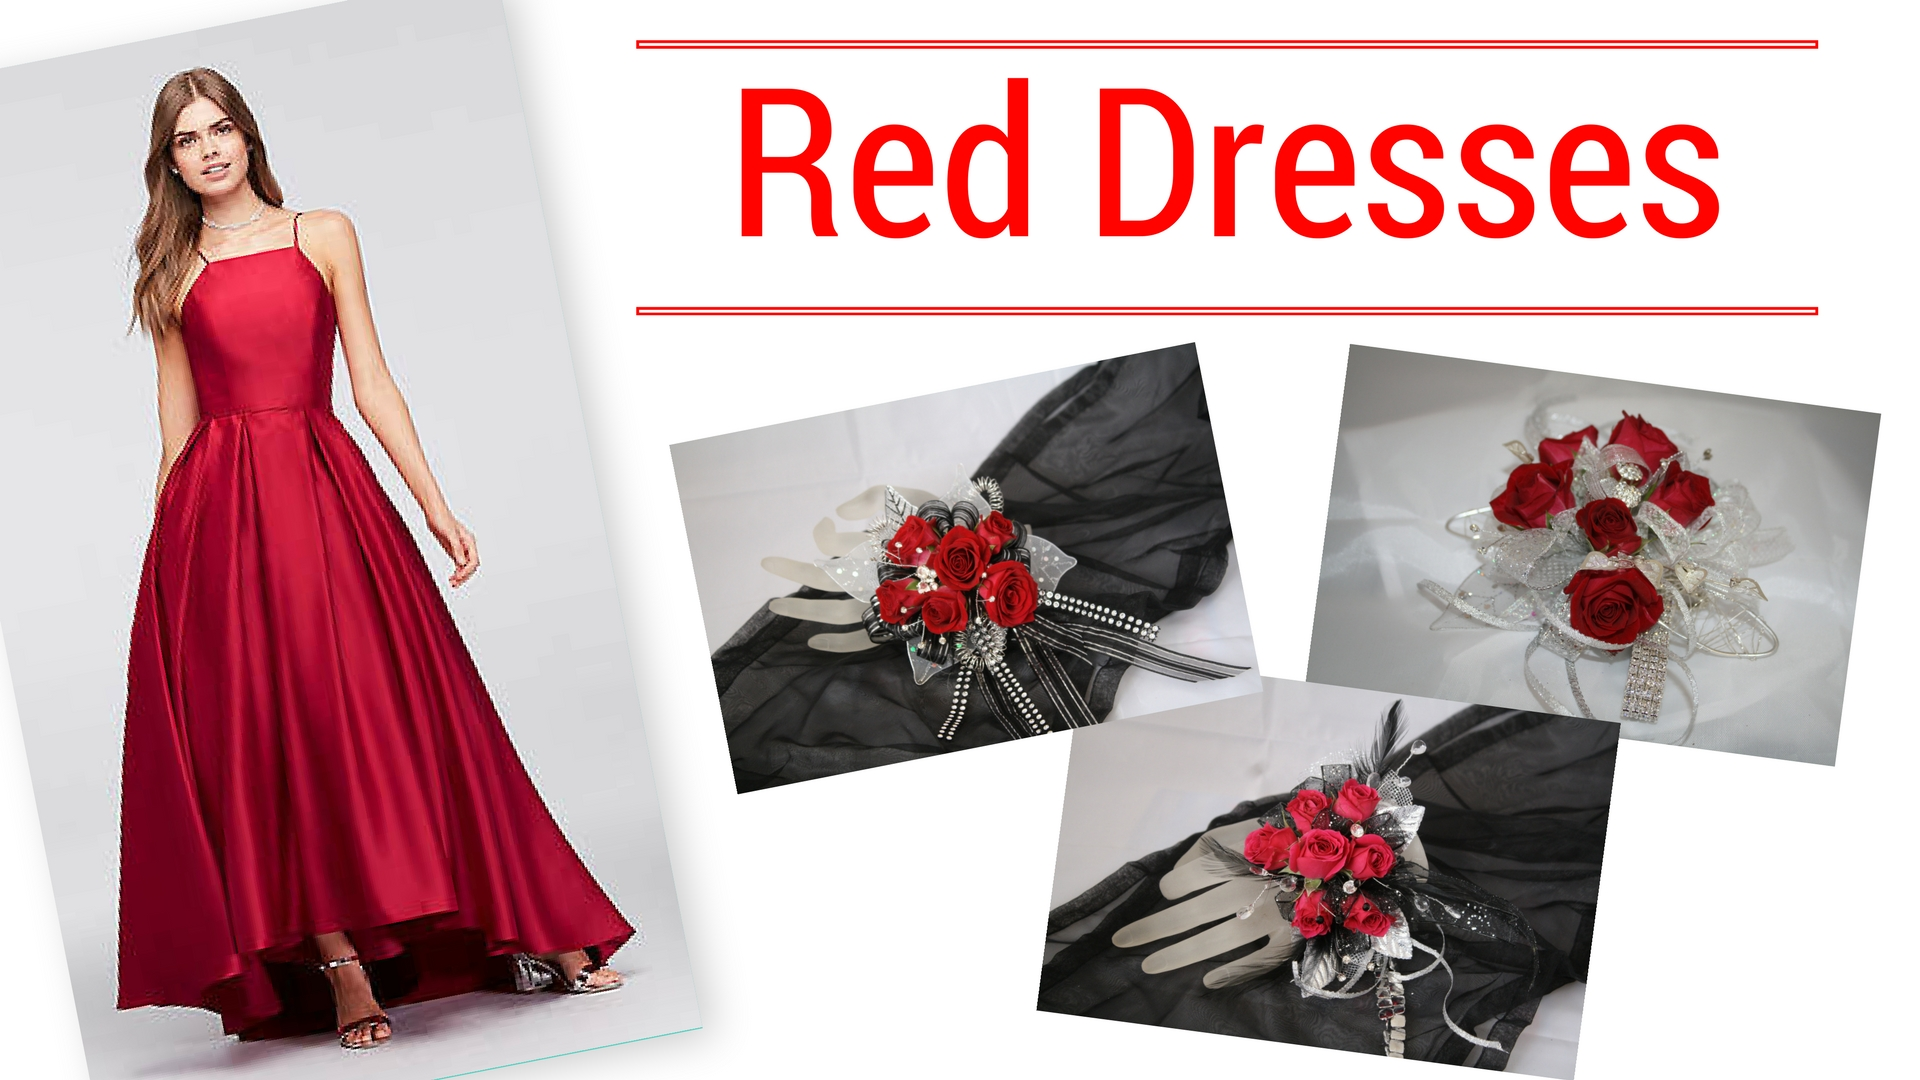 Prom 2018 Trends prom corsage near me flower shop in pasadena tx Red Dress